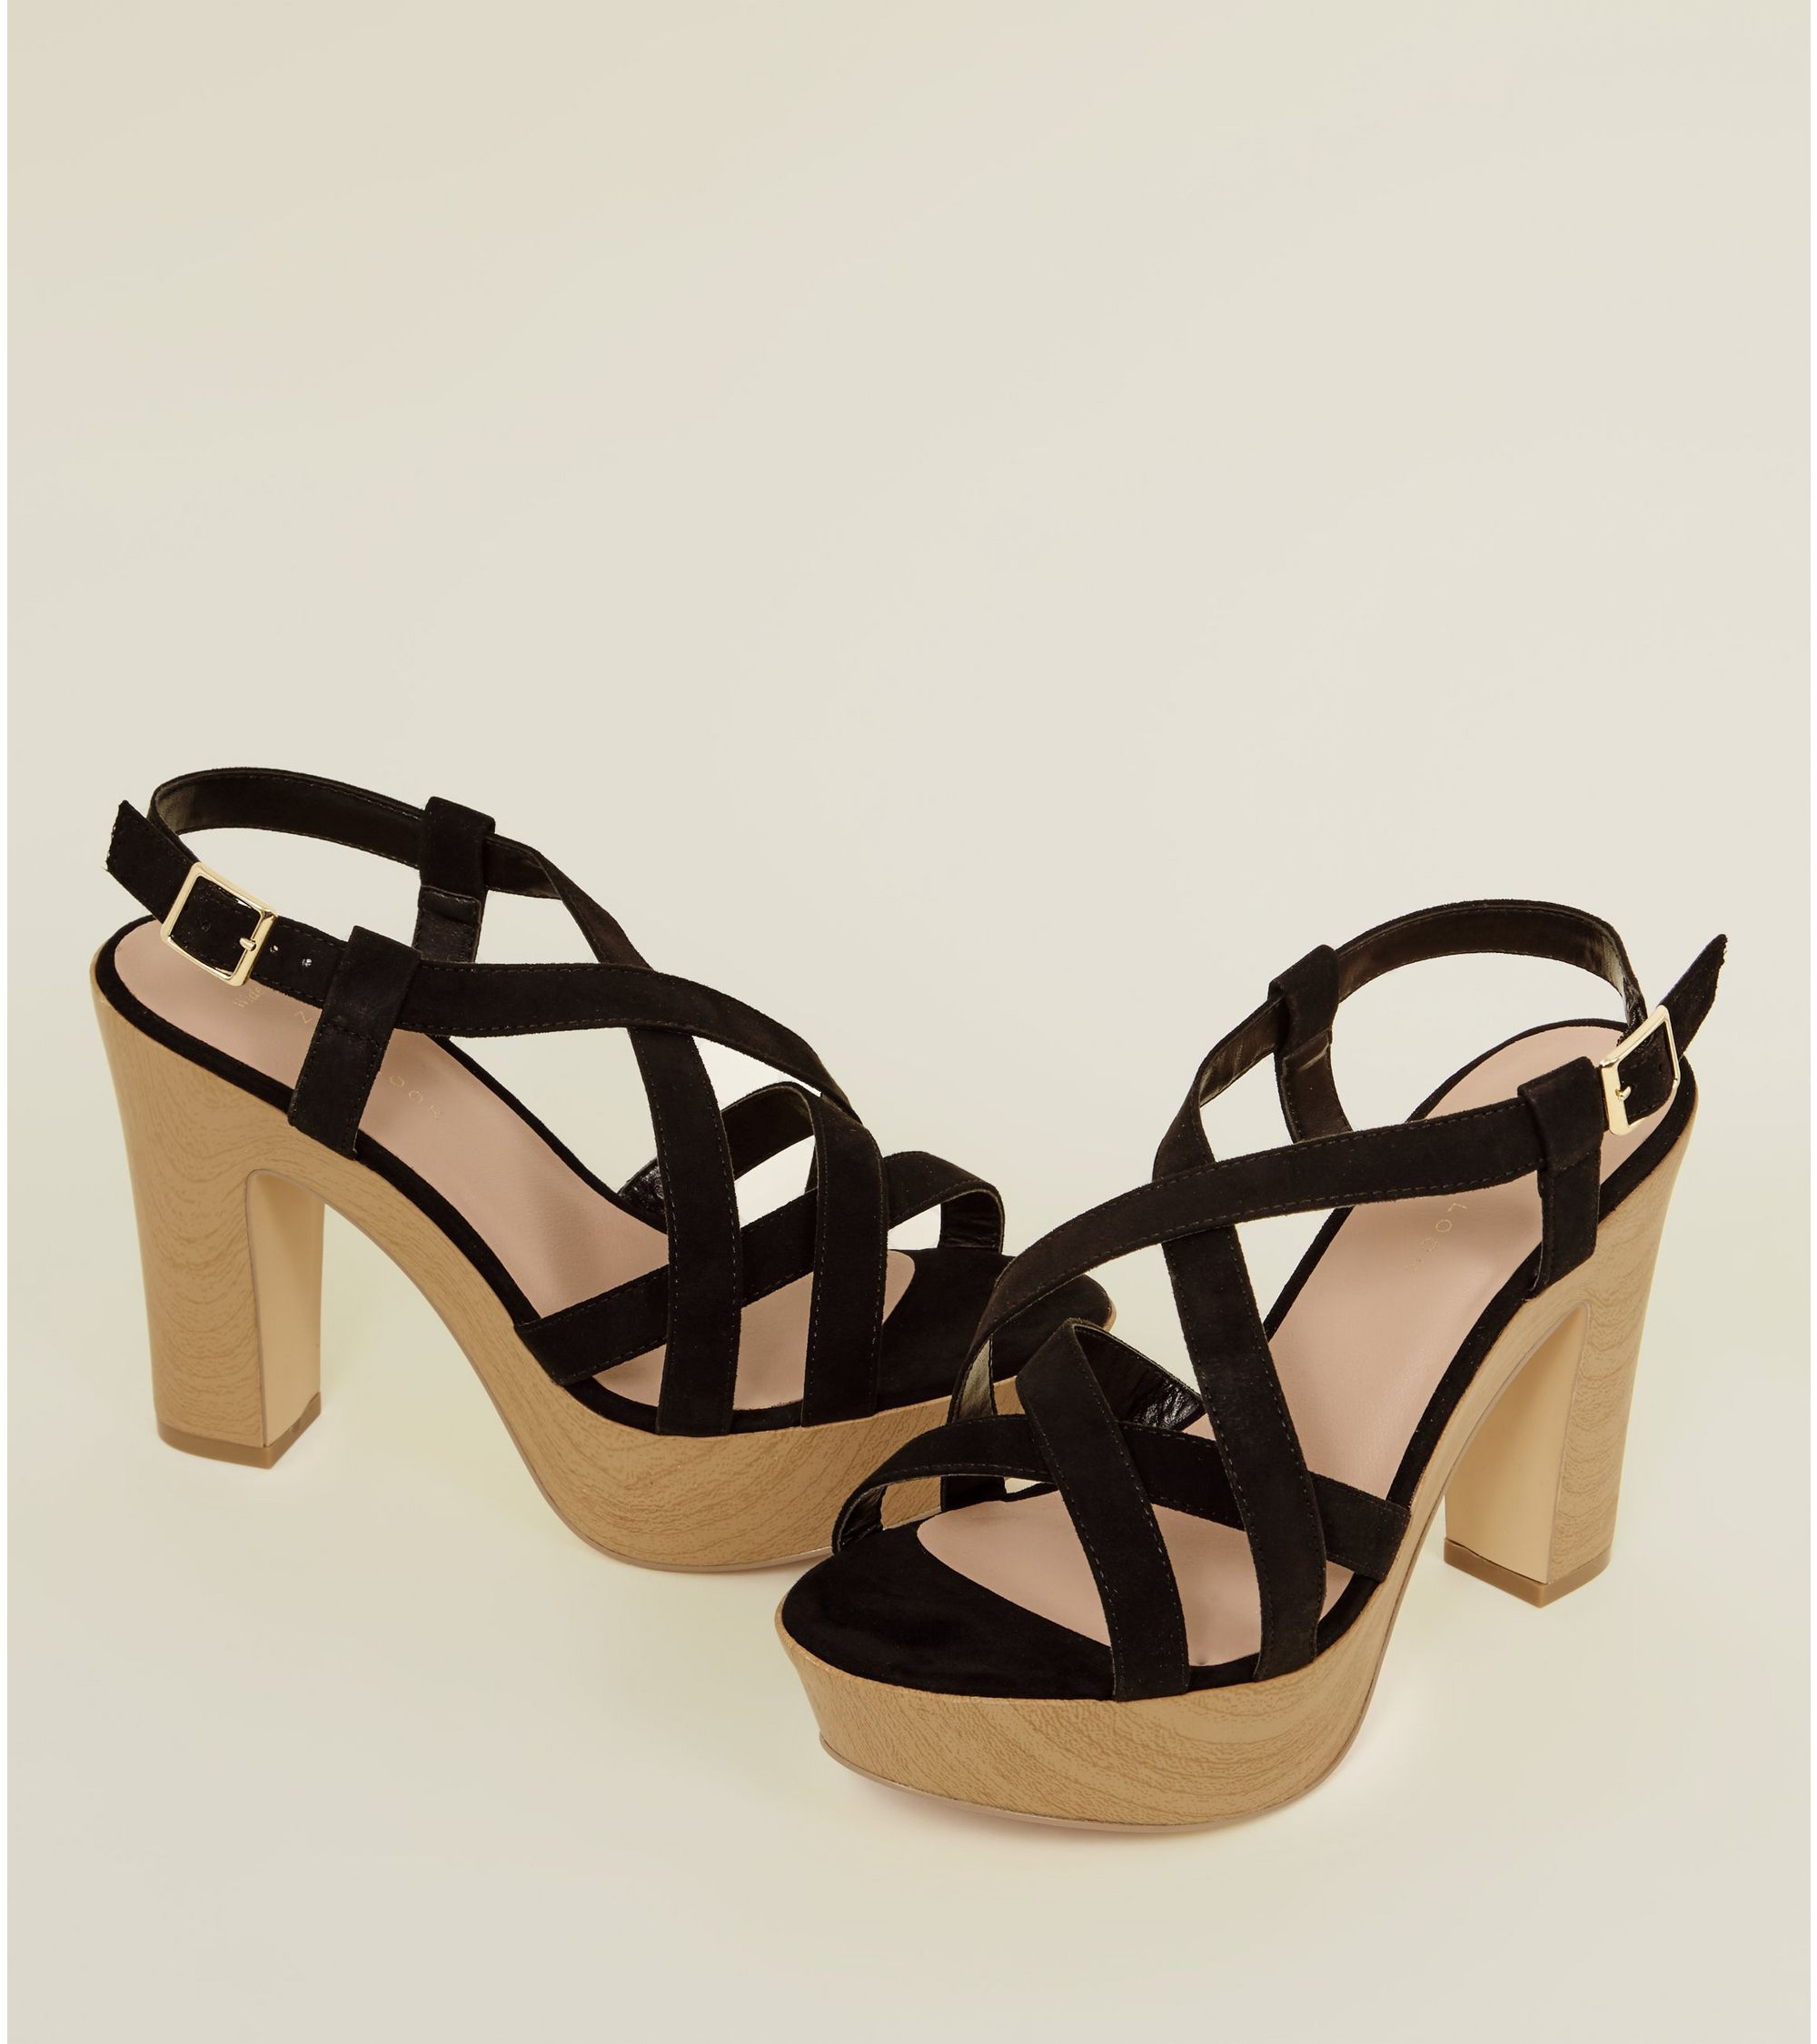 e3f0e58831b New Look Wide Fit Black Suedette Wood Platform Block Heels at £11 ...